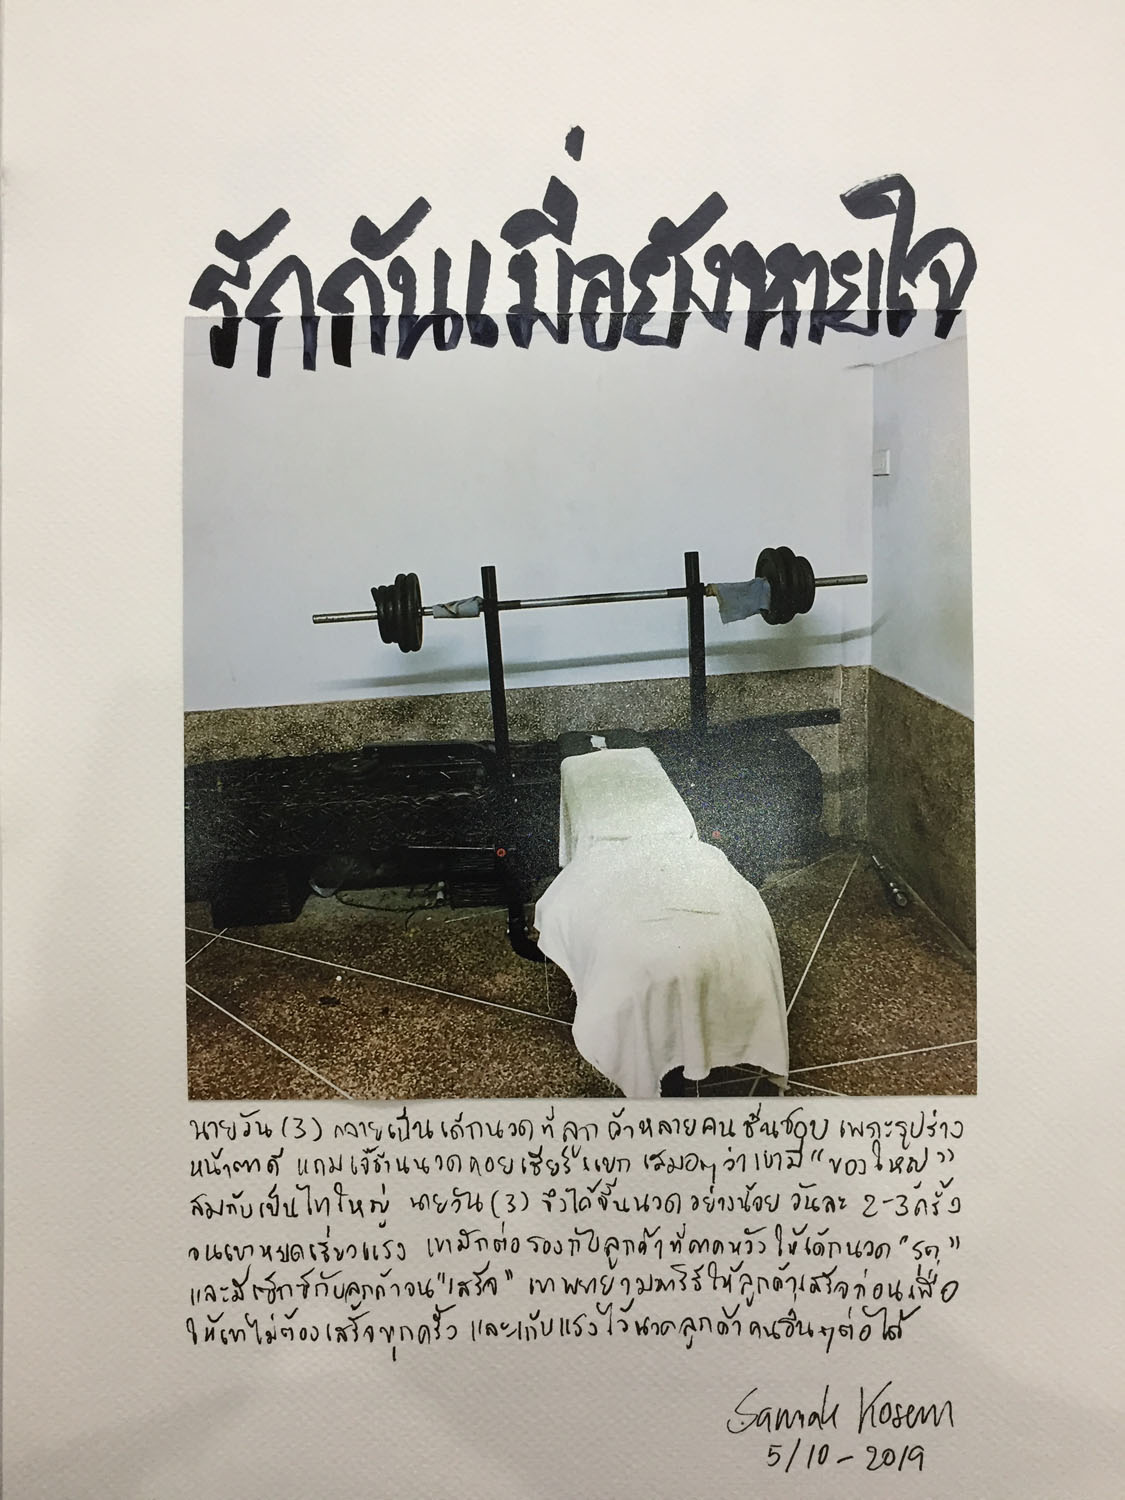 Borders re/make Bodies: Chiang Mai Ethnography - Ethnography of the House No. 5